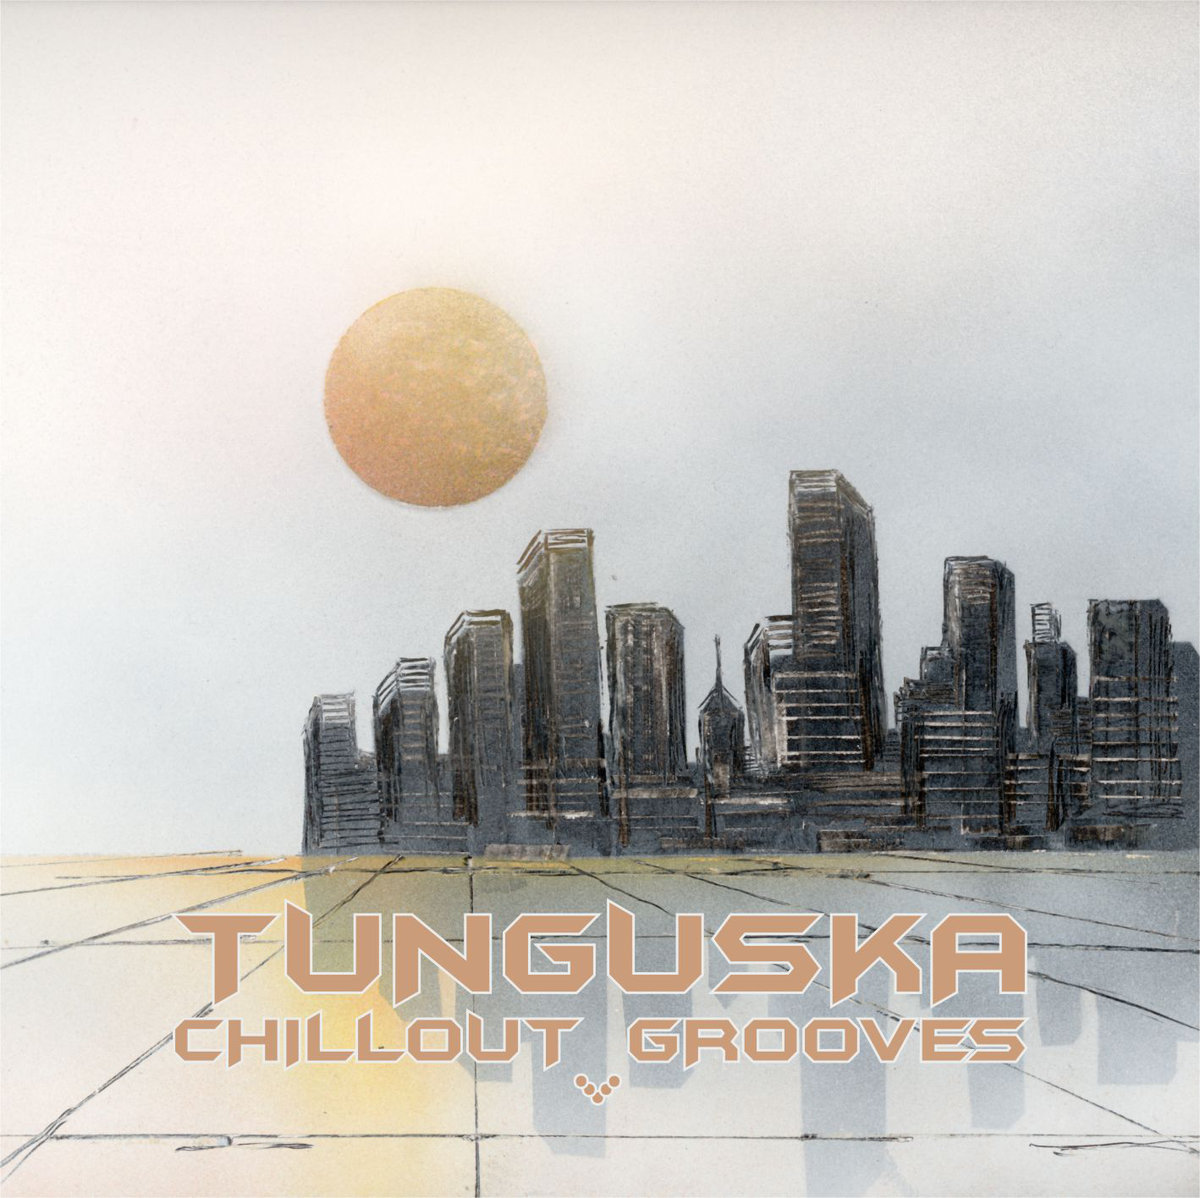 VST GUru feat. Vitaliy Budyak - The Way (Promo Version) @ 'Tunguska Chillout Grooves - Volume 5' album (electronic, ambient)